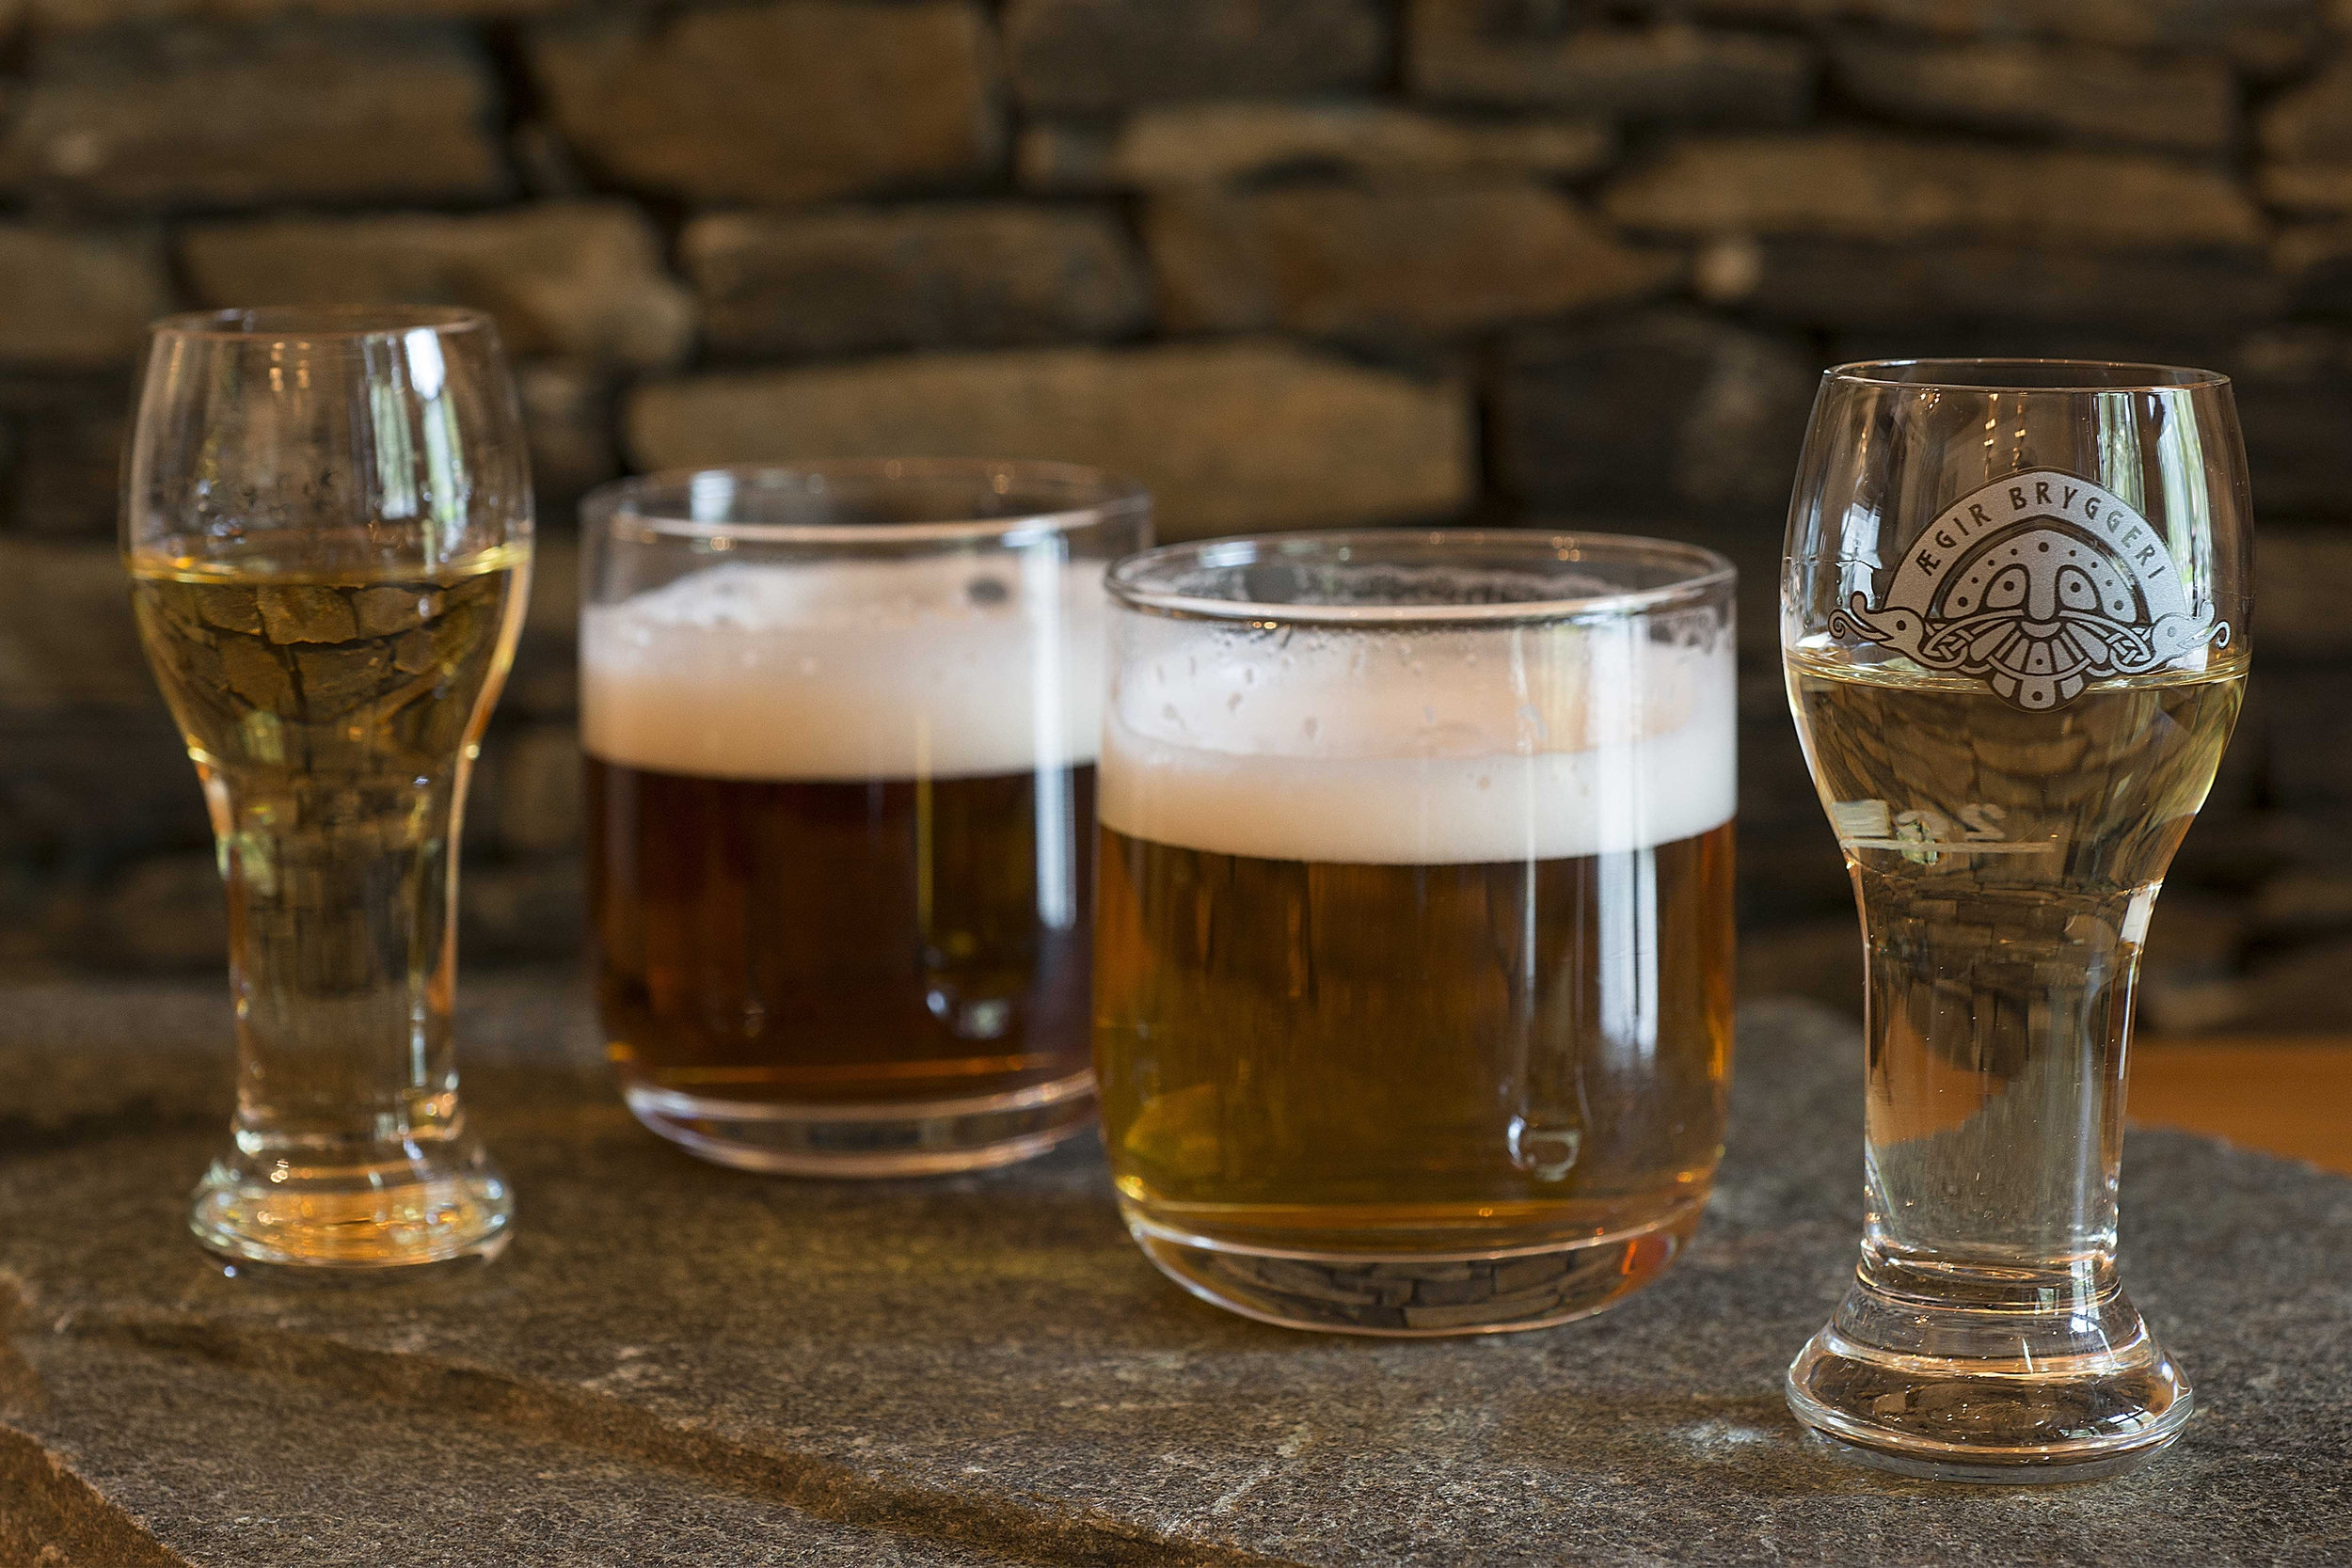 Beer and aquavit tasting - Listen to and be part of the Ægir story, and sample Ægir beer and aquavit – new seasonings, new flavours and new variations.On request all year!Duration: 45–60 mins.Venue: Ægir Tasting Room PeisestovaPrice: Nok 360 per person for groups of min. 15 persons, or NOK 5400 for smaller groups.